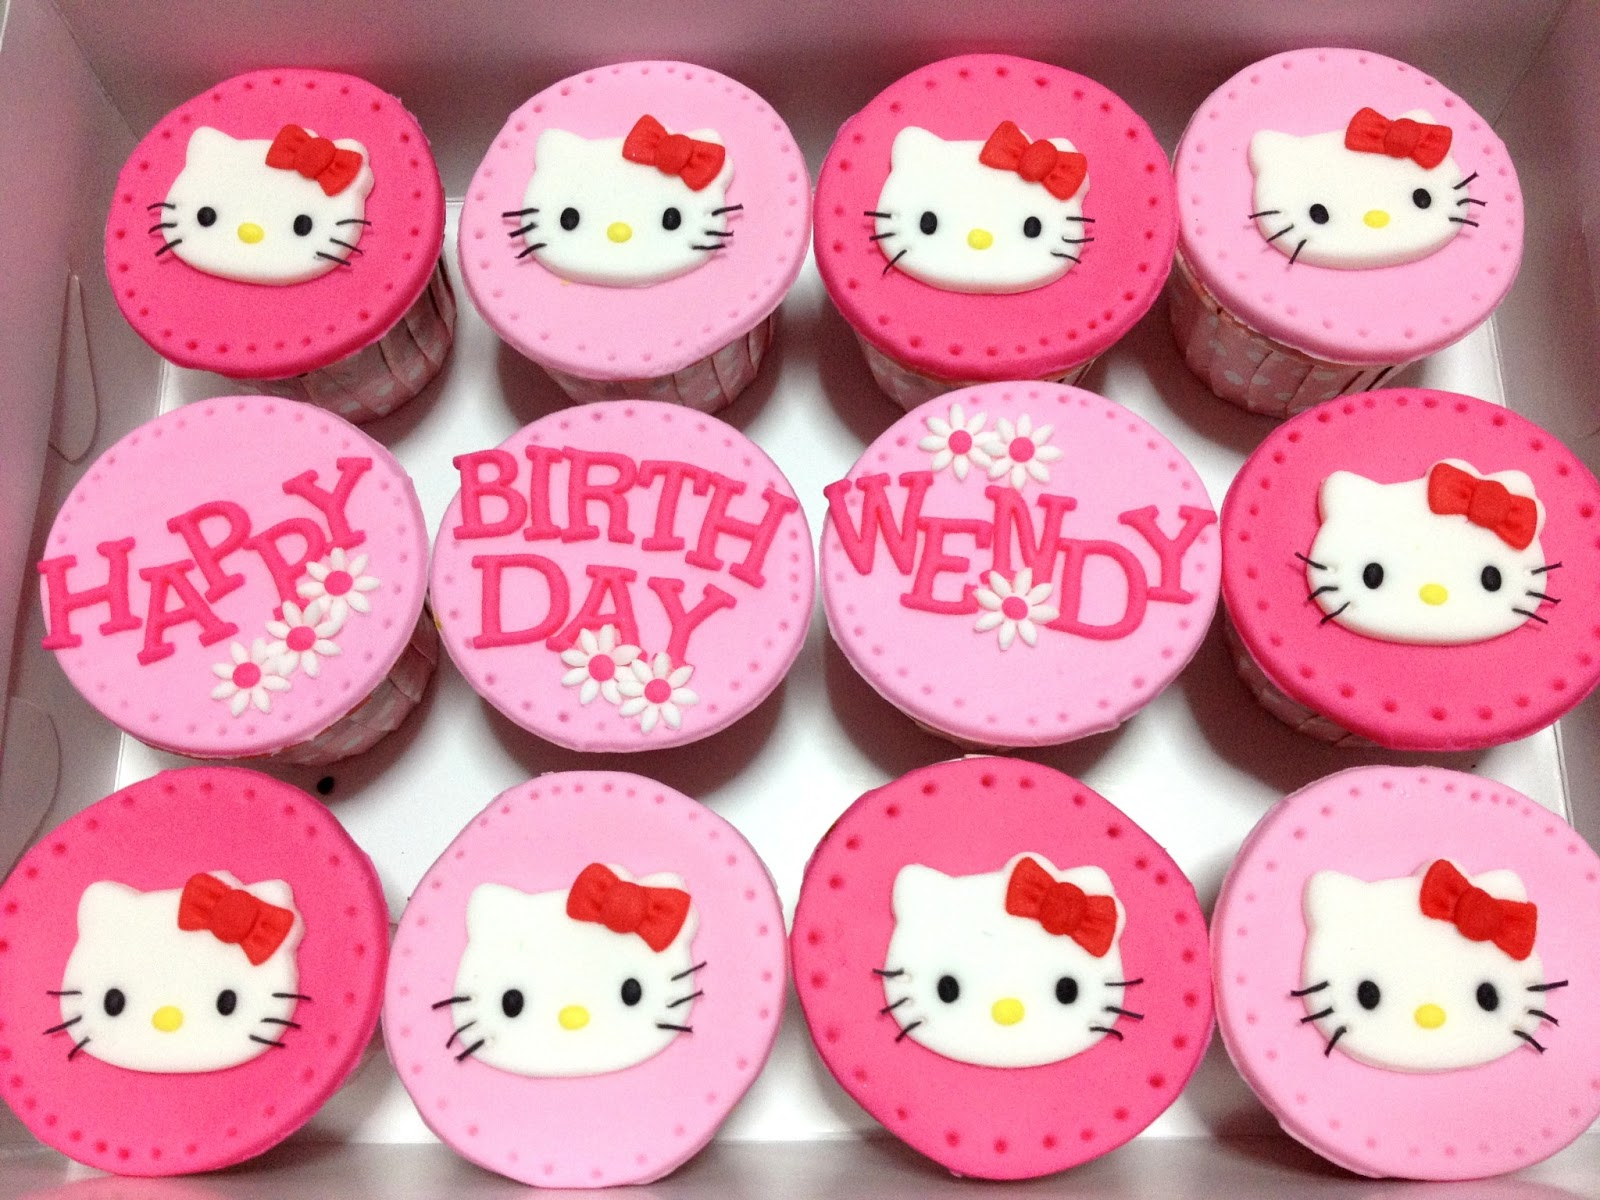 Image result for happy birthday wendy